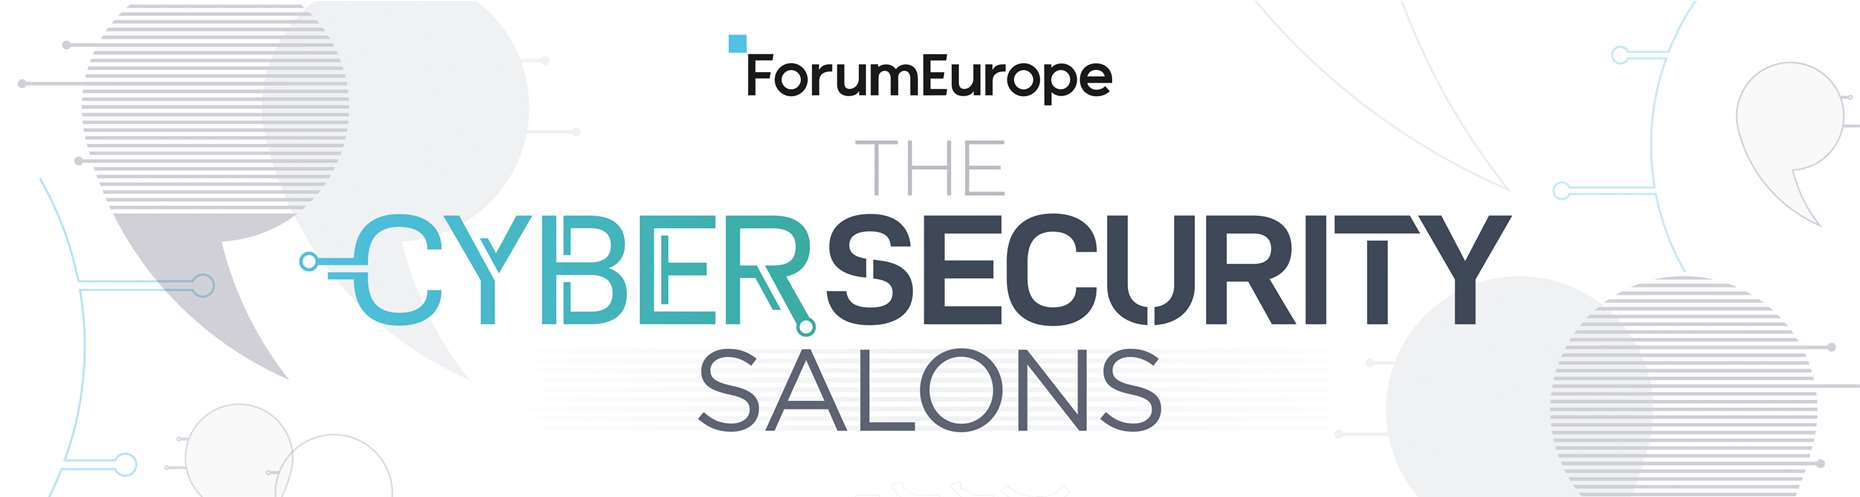 Cyber Security Salons